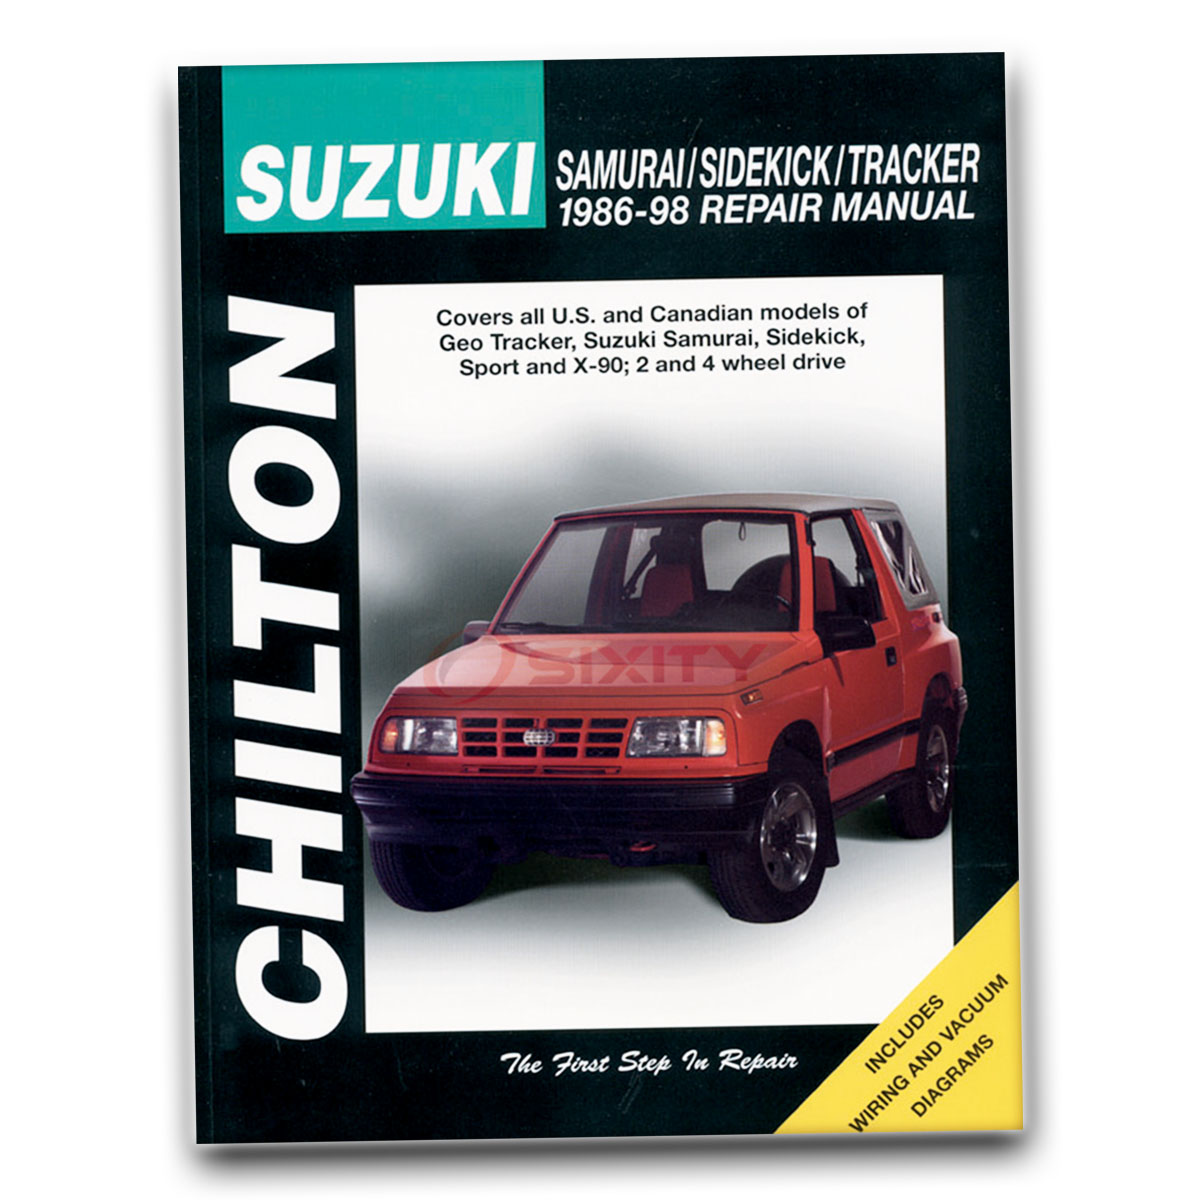 suzuki sidekick chilton repair manual jl jx sport js jlx ja shop rh ebay com suzuki sidekick workshop manual suzuki sidekick workshop manual